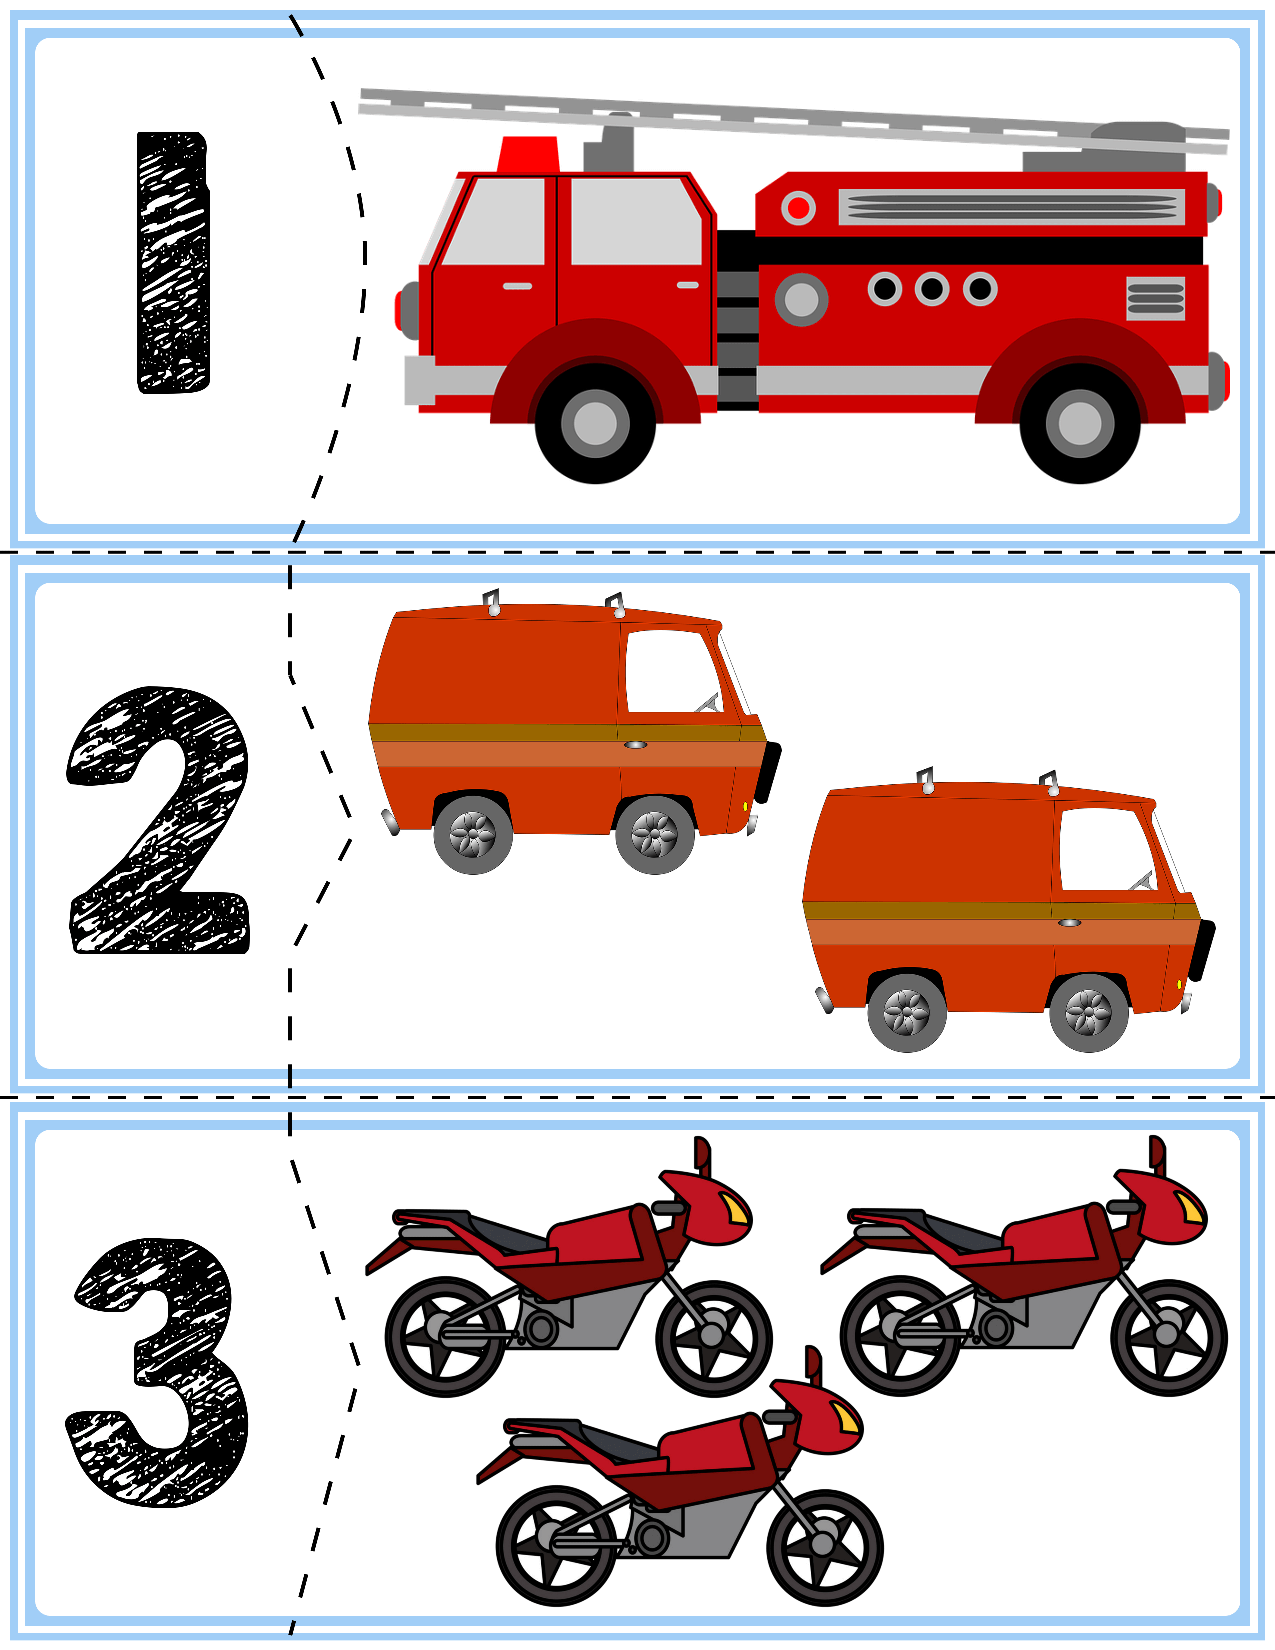 1 Teach Counting Skills With Transportation Vehicles Great For Teaching 1 1 Countin Transportation Preschool Preschool Activities Transportation Activities [ 1650 x 1275 Pixel ]